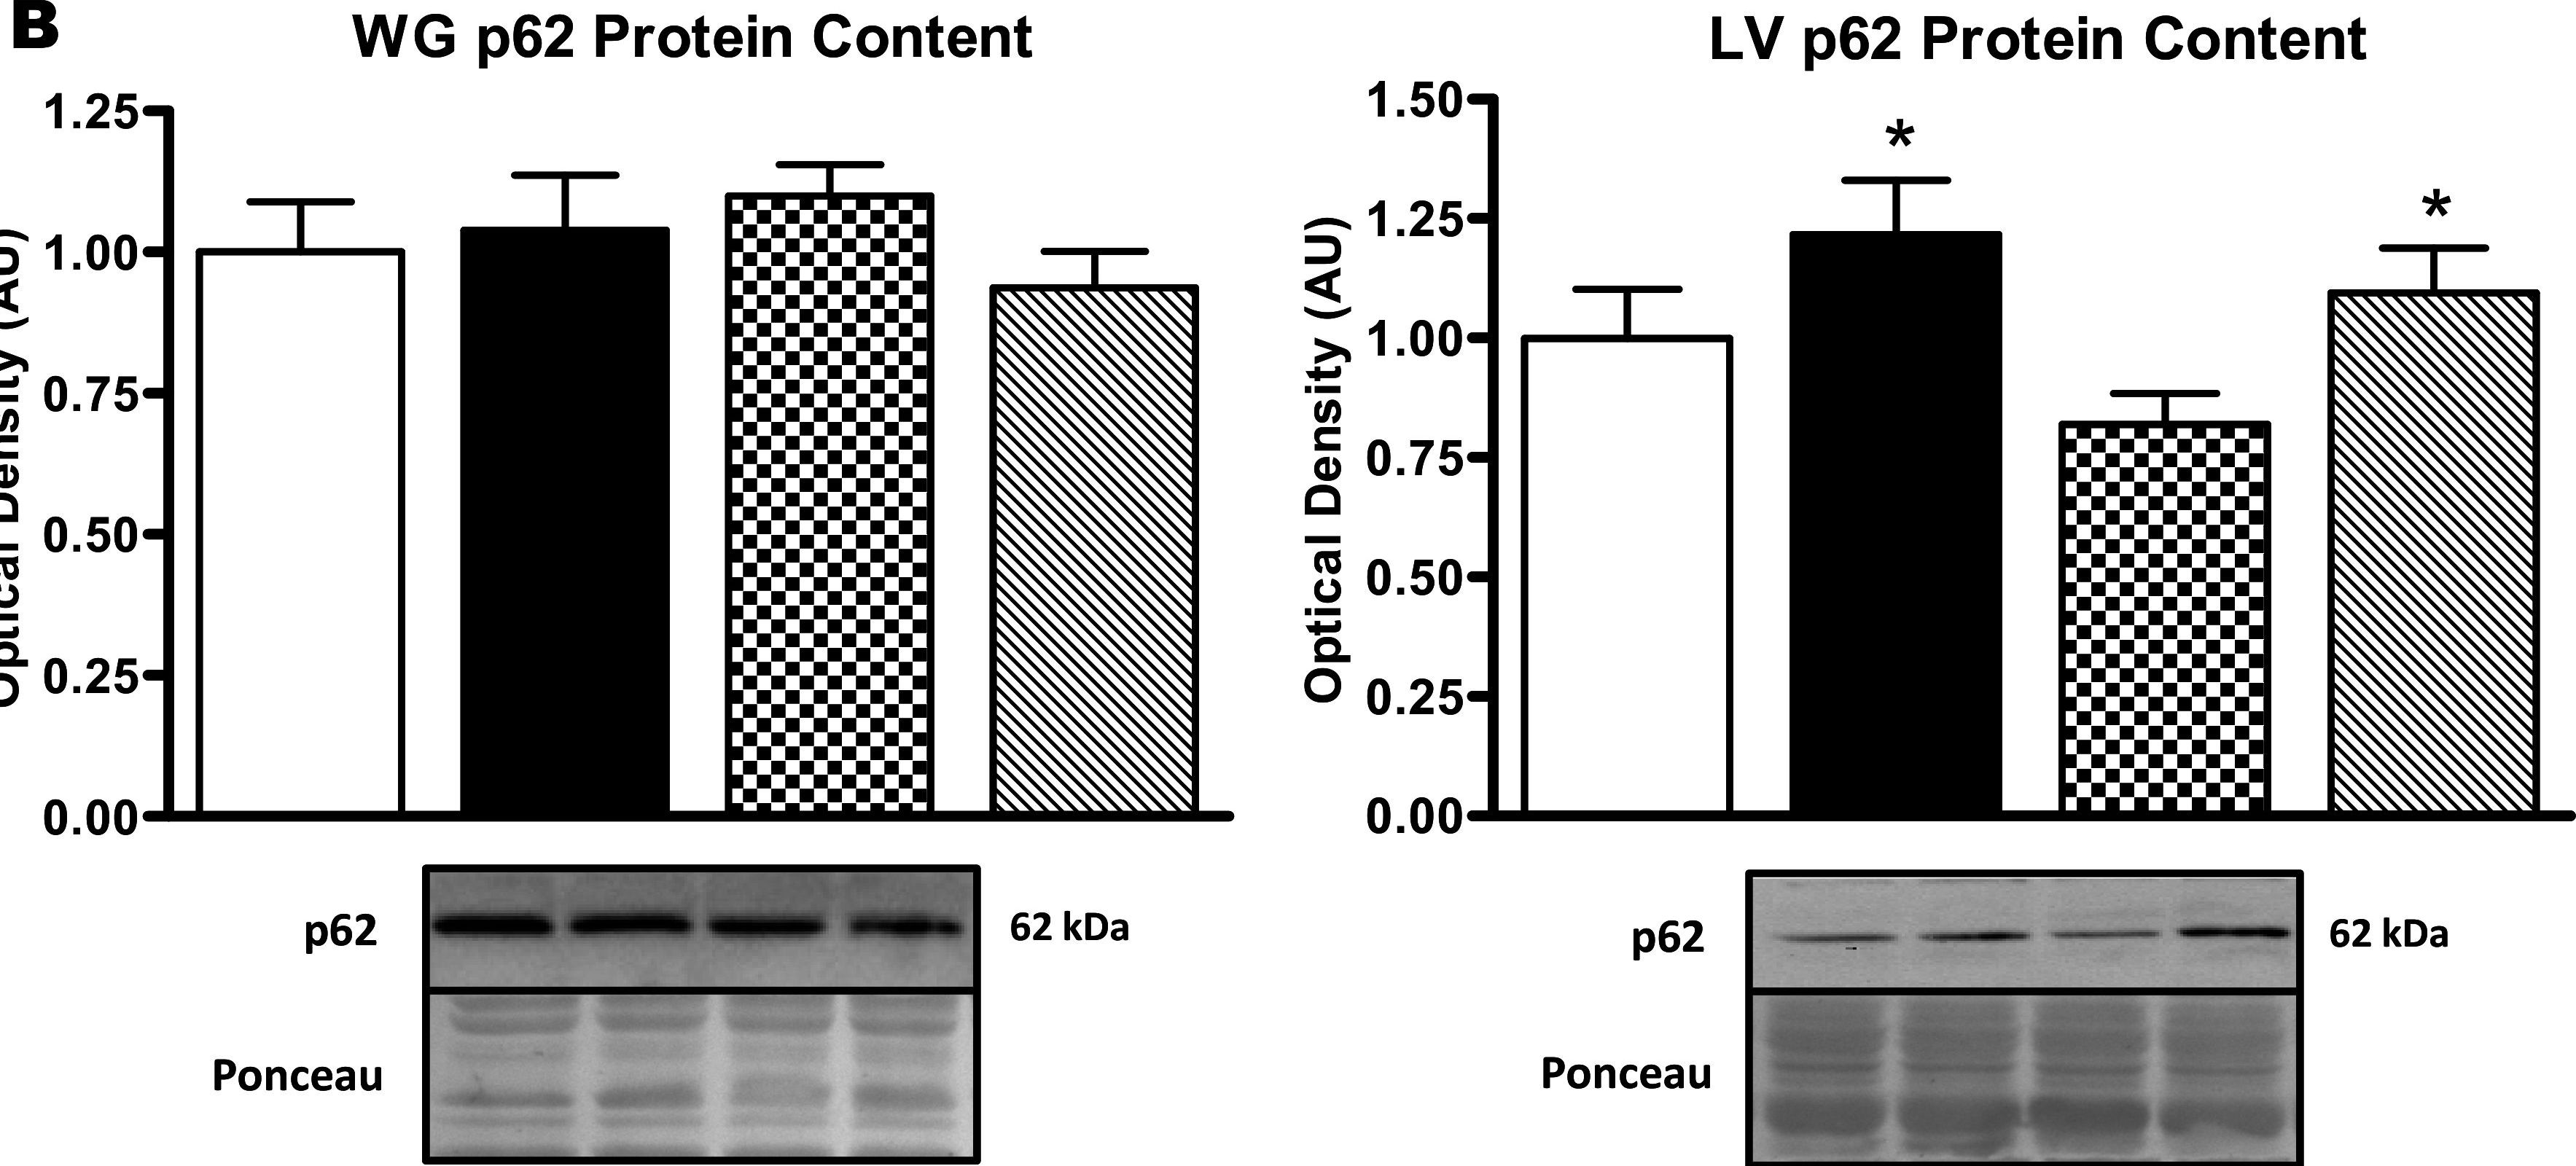 Autophagic signaling and proteolytic enzyme activity in cardiac and skeletal muscle of spontaneously hypertensive rats following chronic aerobic exercise.